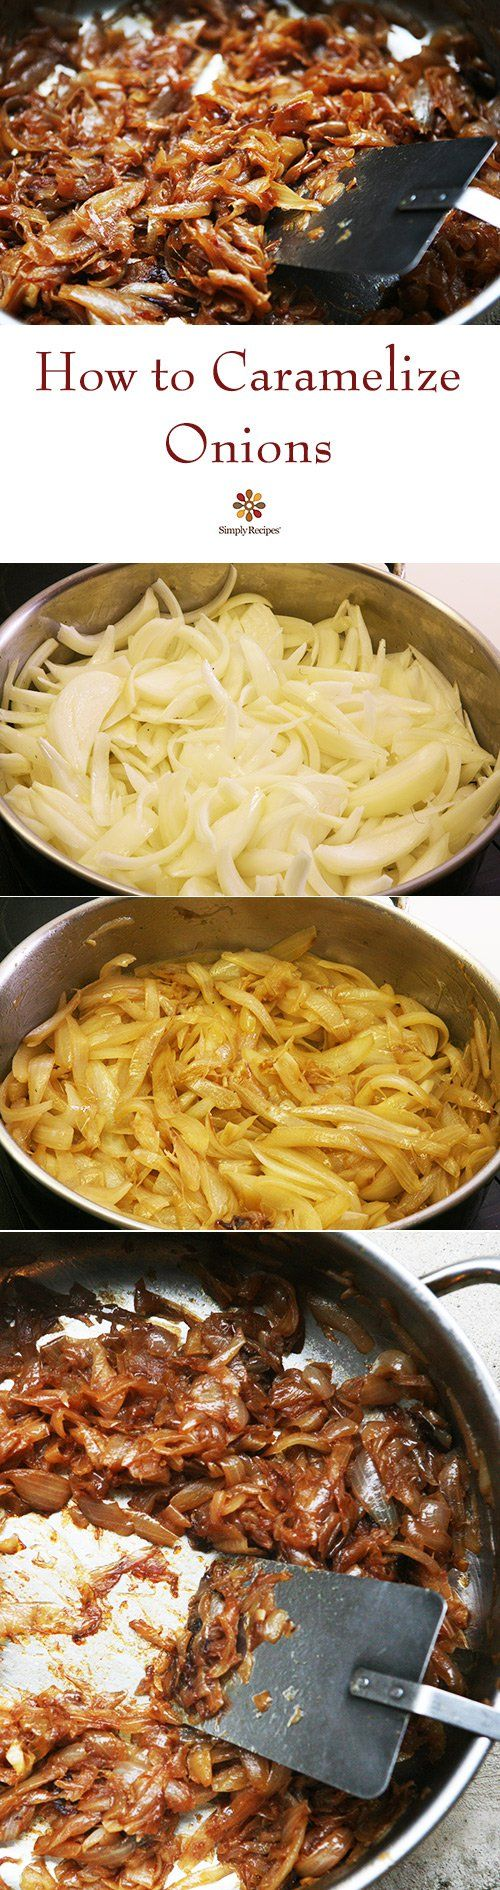 How to slowly caramelize onions to bring out deep, rich, sweet flavor ...